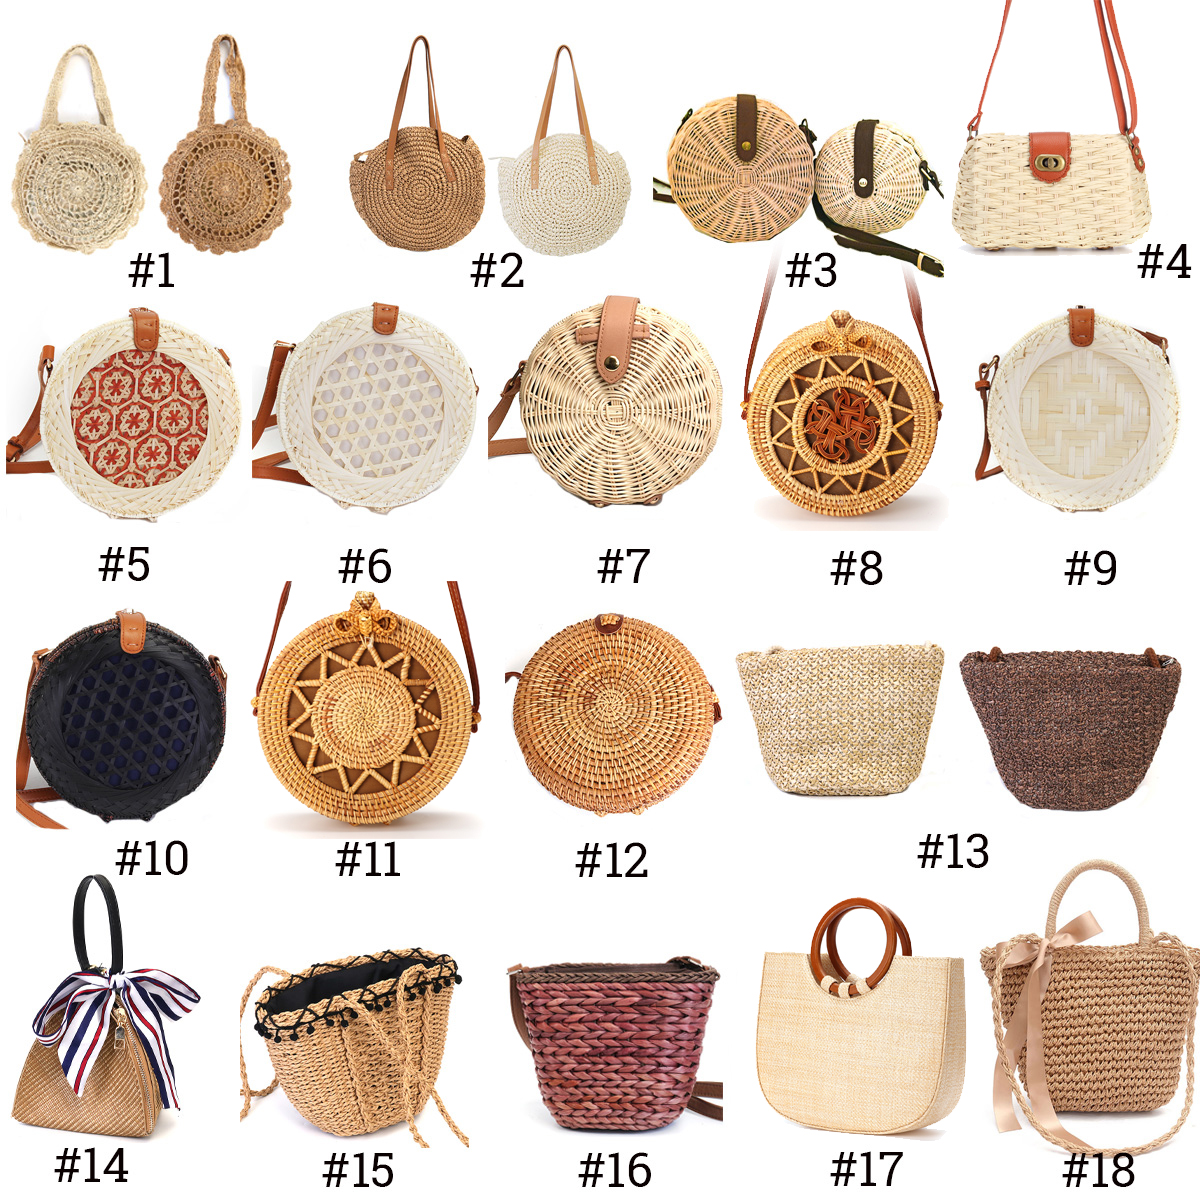 2019 Women Vintage Beach Straw Bag Ladies Handmade Woven Rattan Messenger Handbag Summer Bali Bohemian Crossbody Shoulder Bag handbag